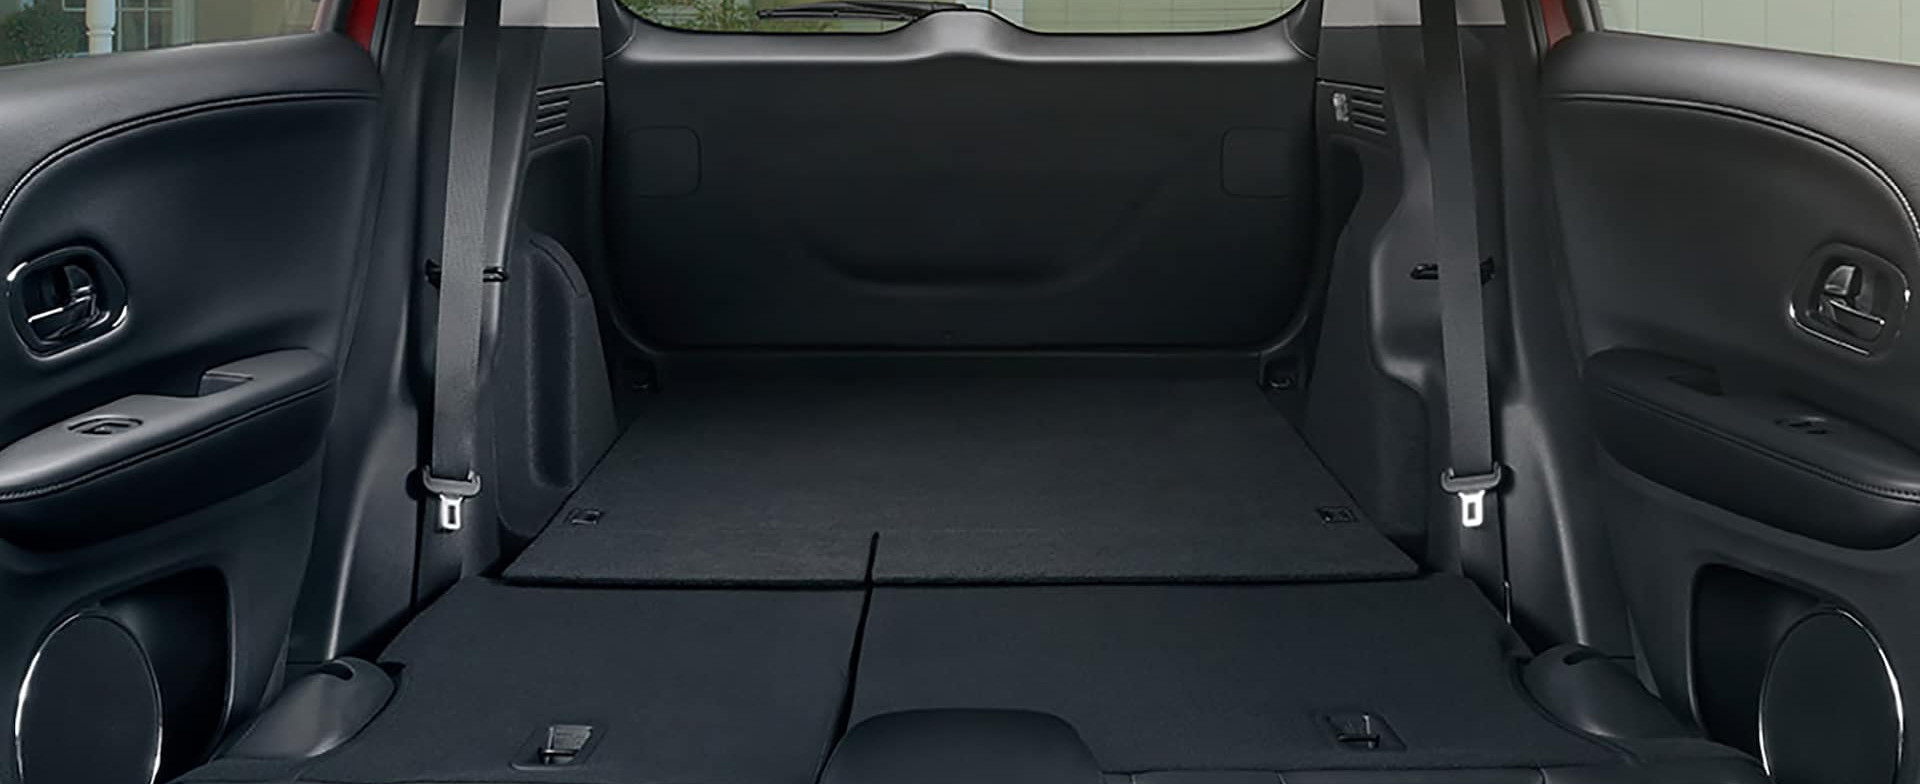 There's Plenty of Room in the 2020 Honda HR-V!